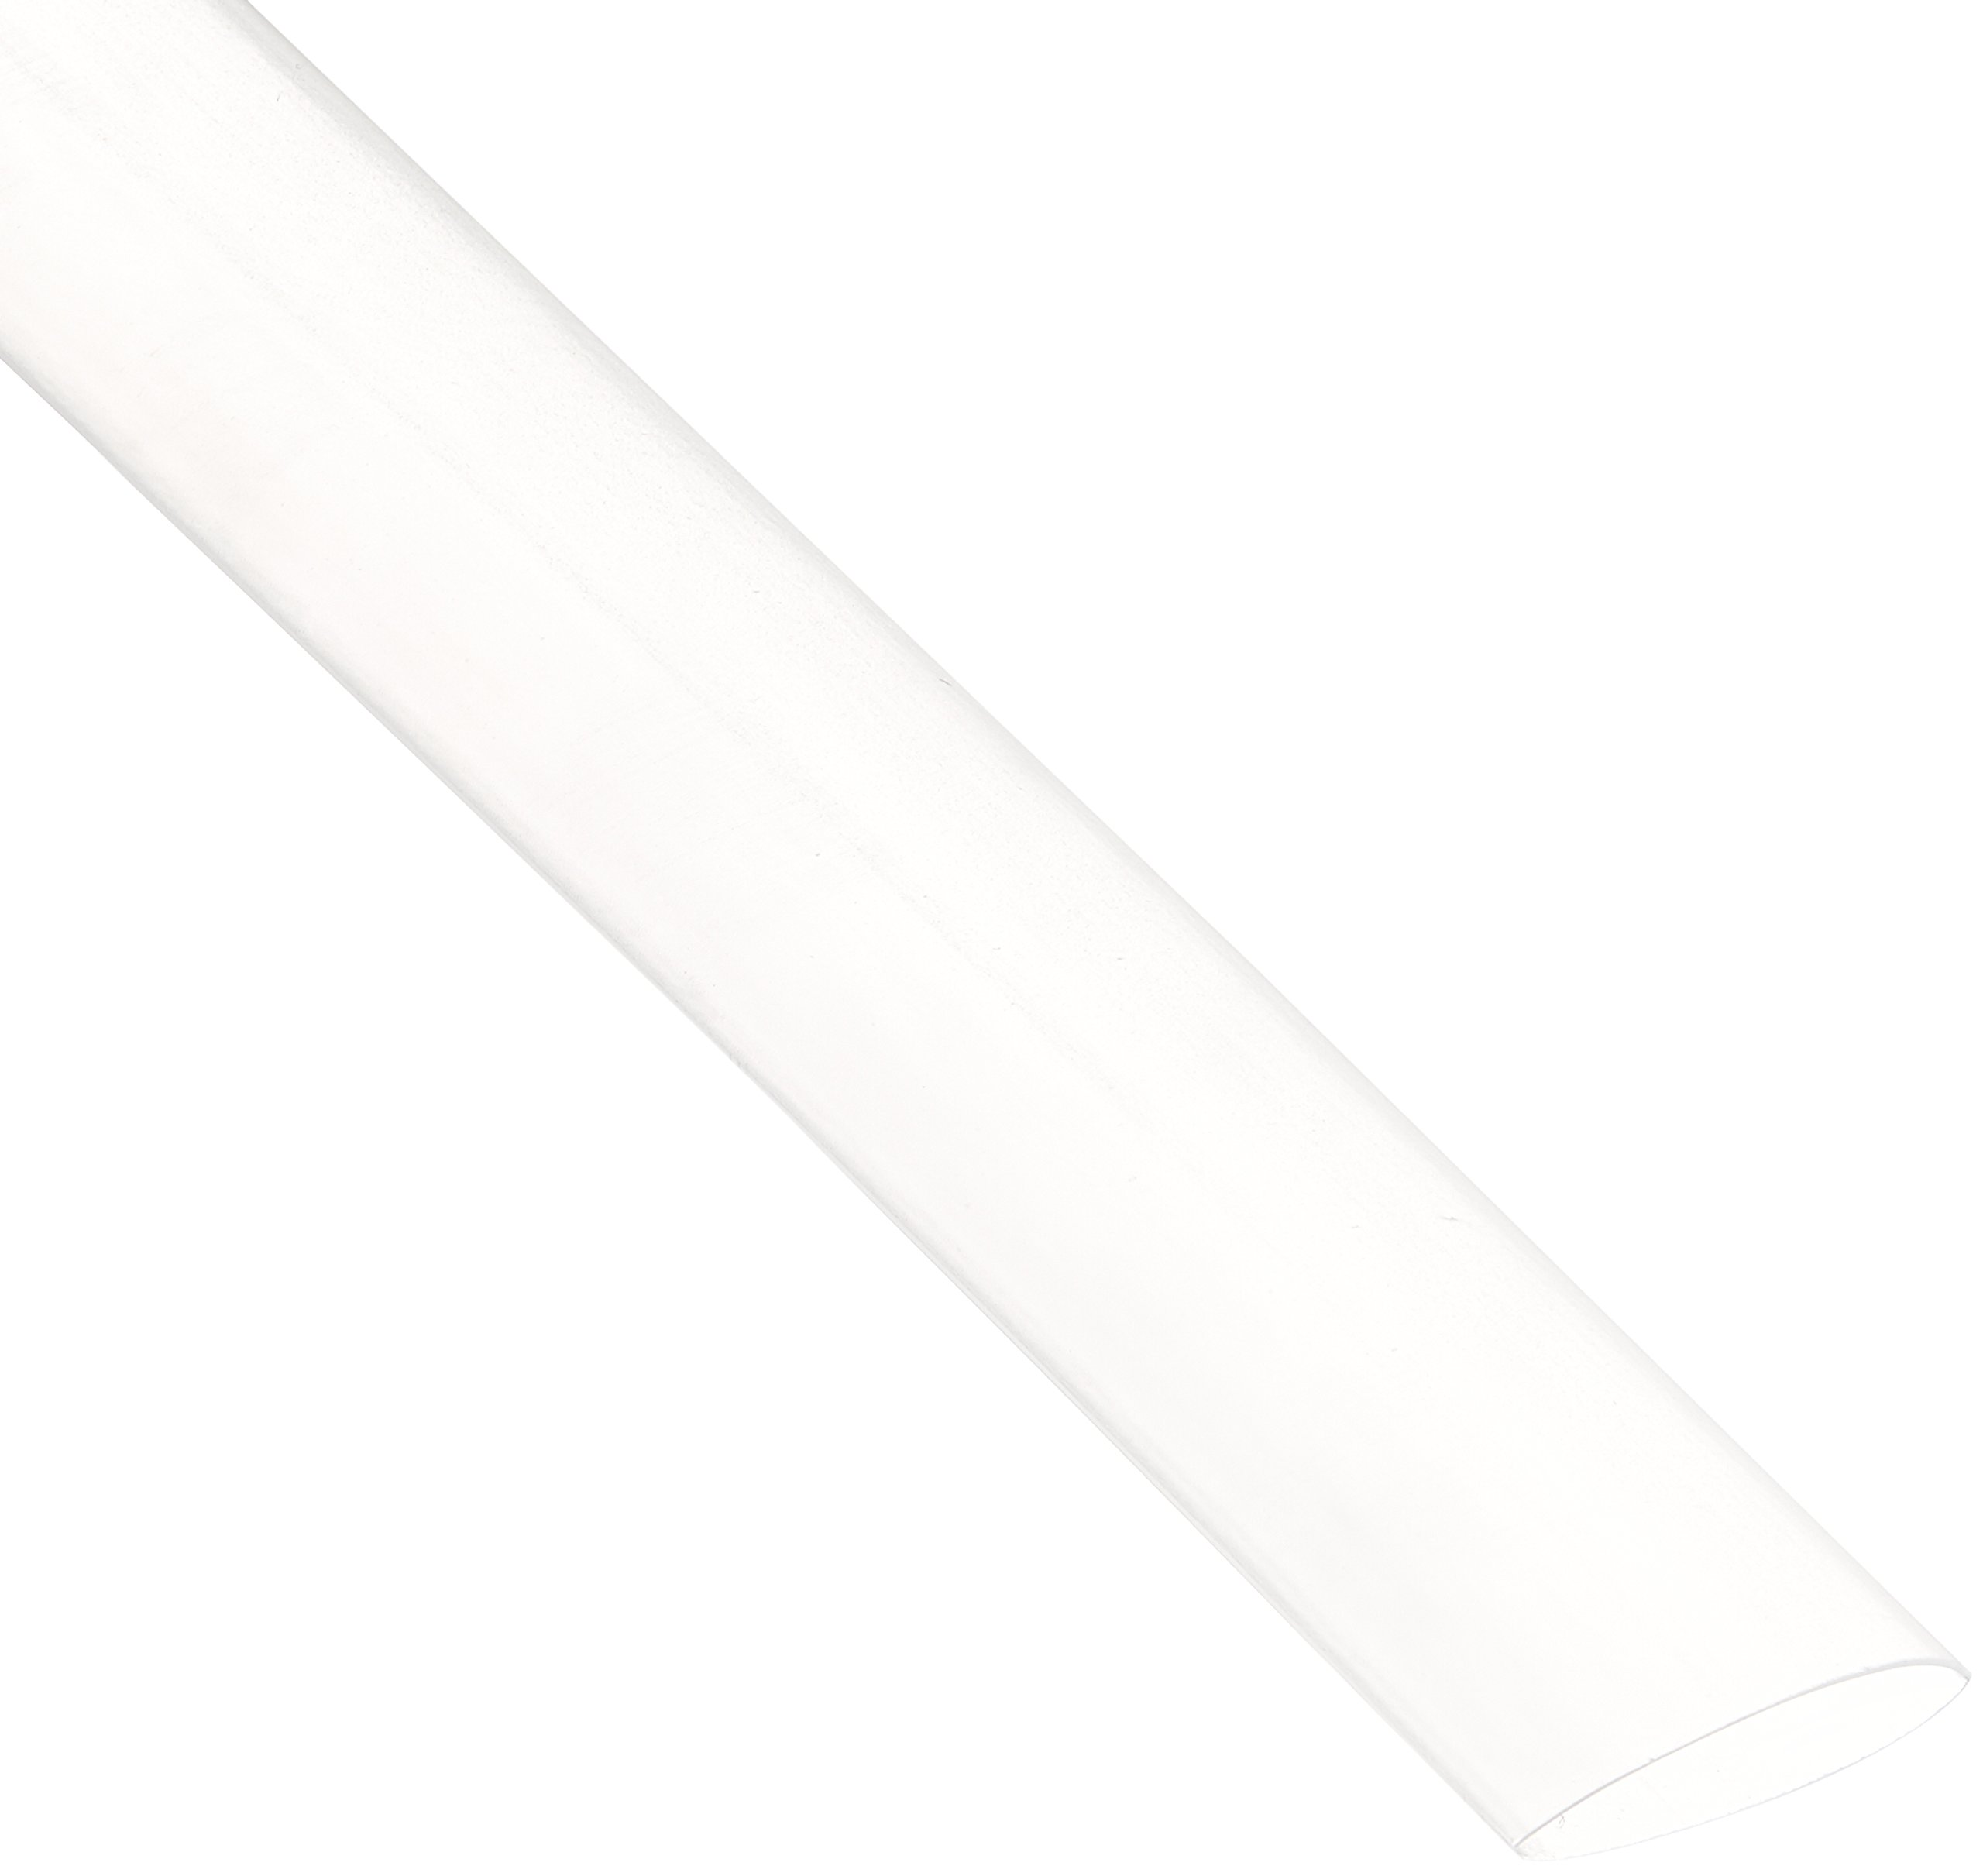 NTE Electronics 47-20806-CL Heat Shrink Tubing, Thin Wall, 2:1 Shrink Ratio, 1/2'' Diameter, 6'' Length, Clear (Pack of 12)